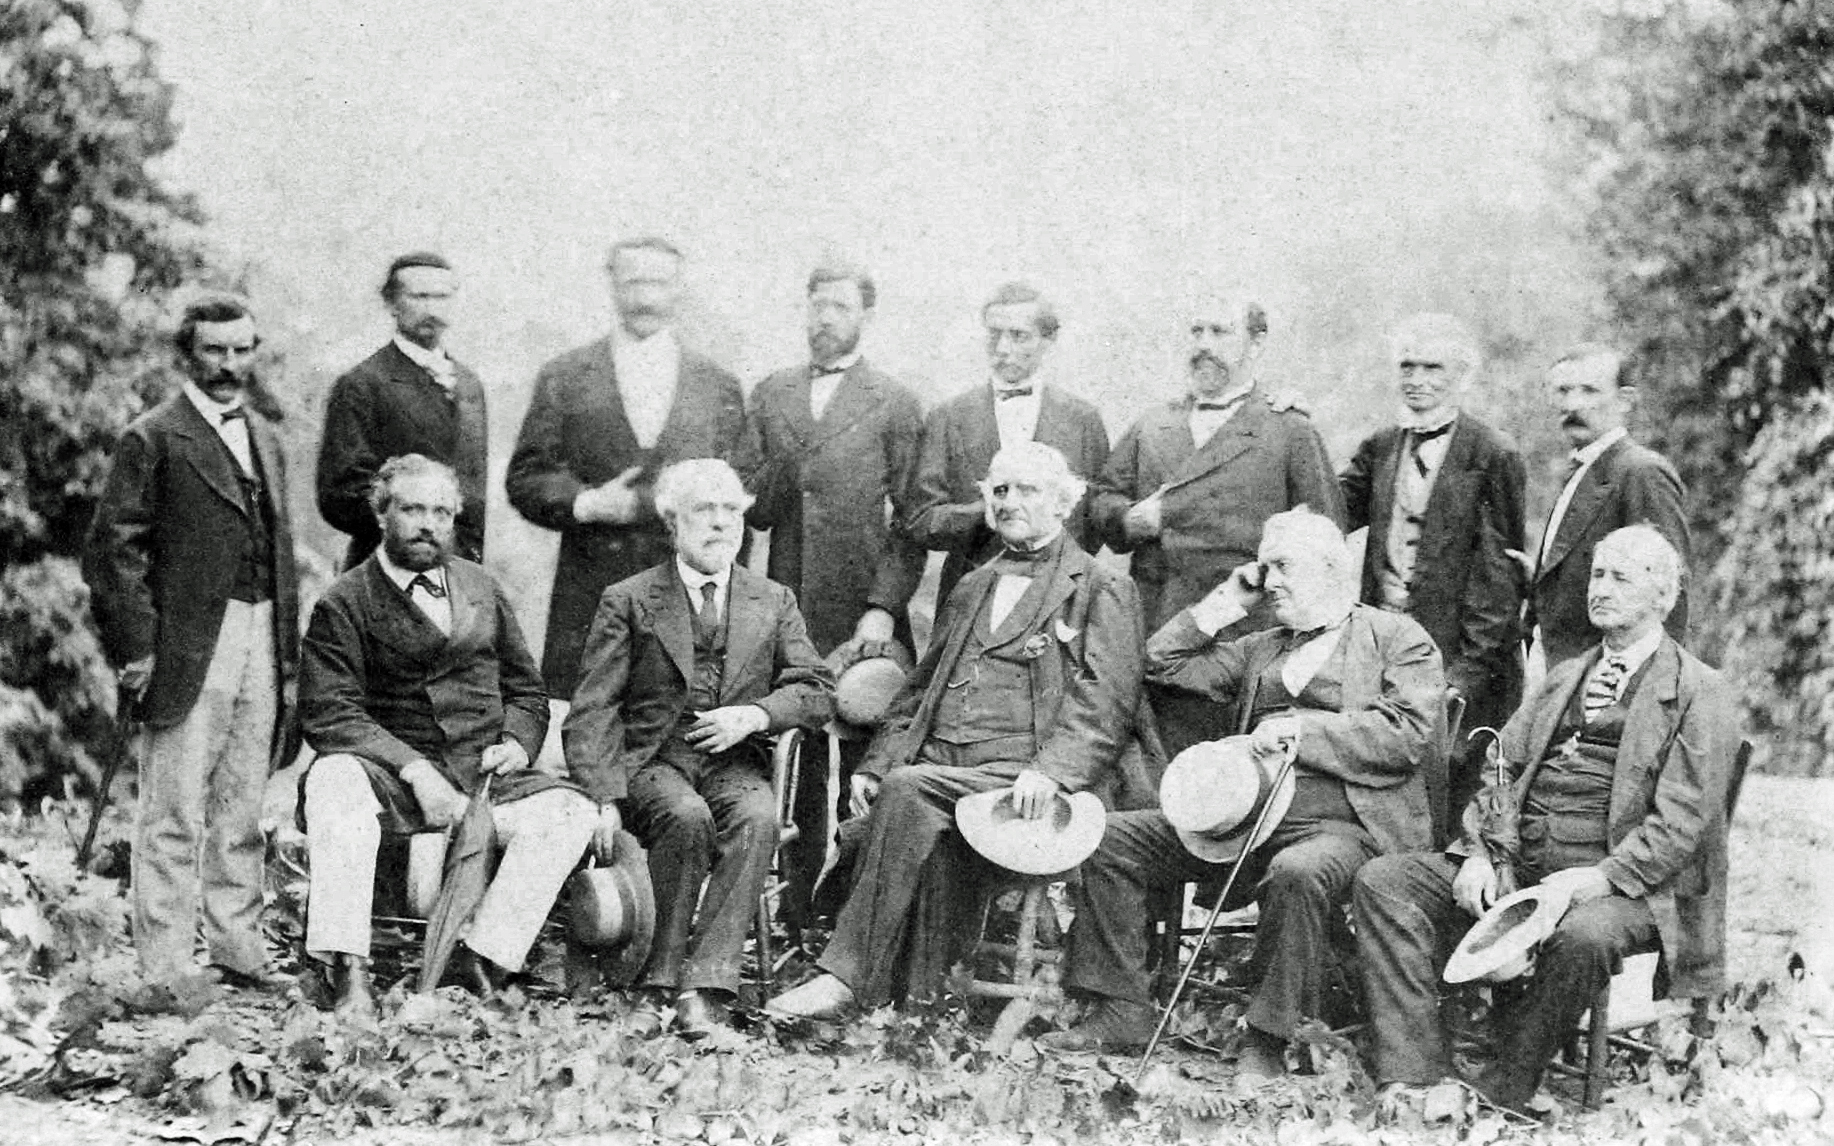 File:Robert E Lee with his Generals, 1869.jpg